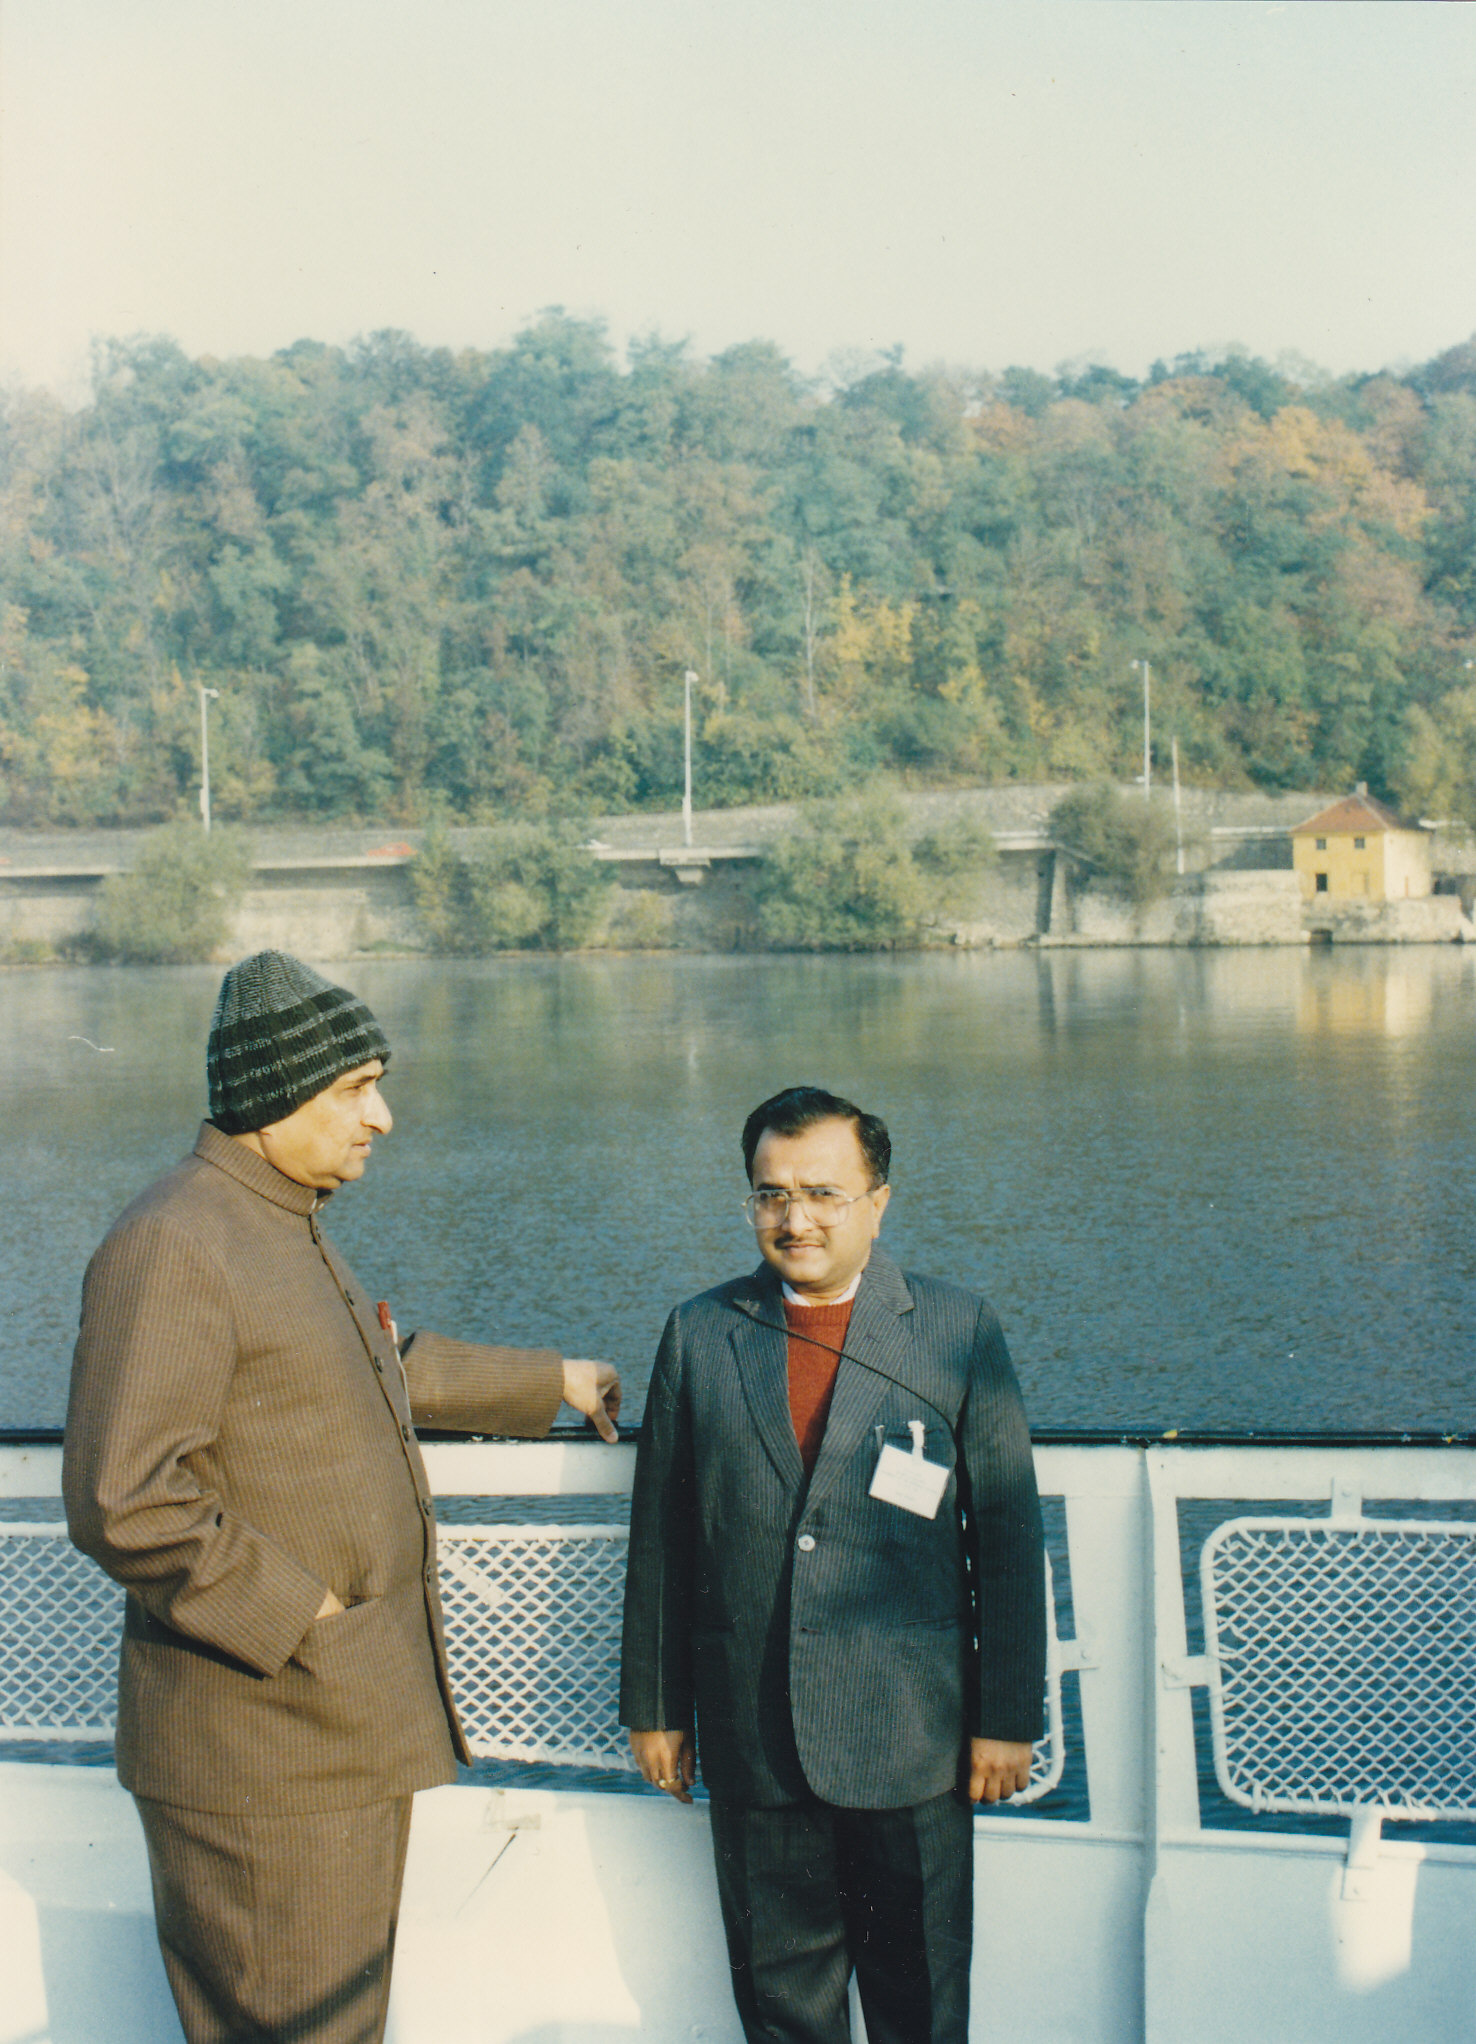 During foreign visit